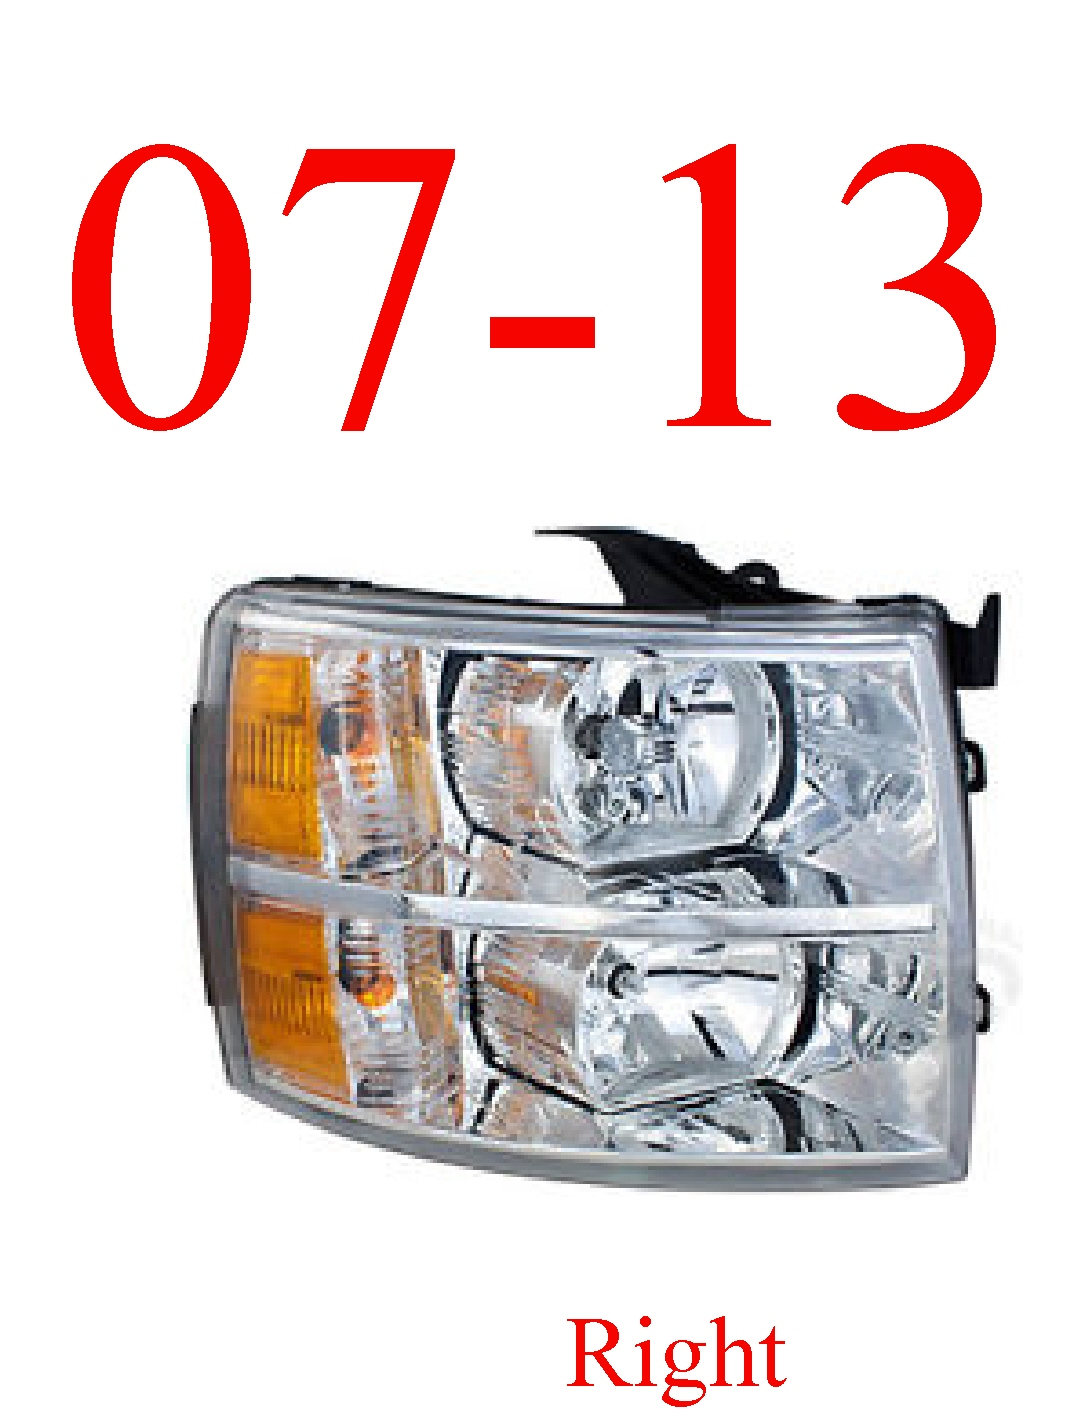 07-13 Chevy Right Head Light Assembly